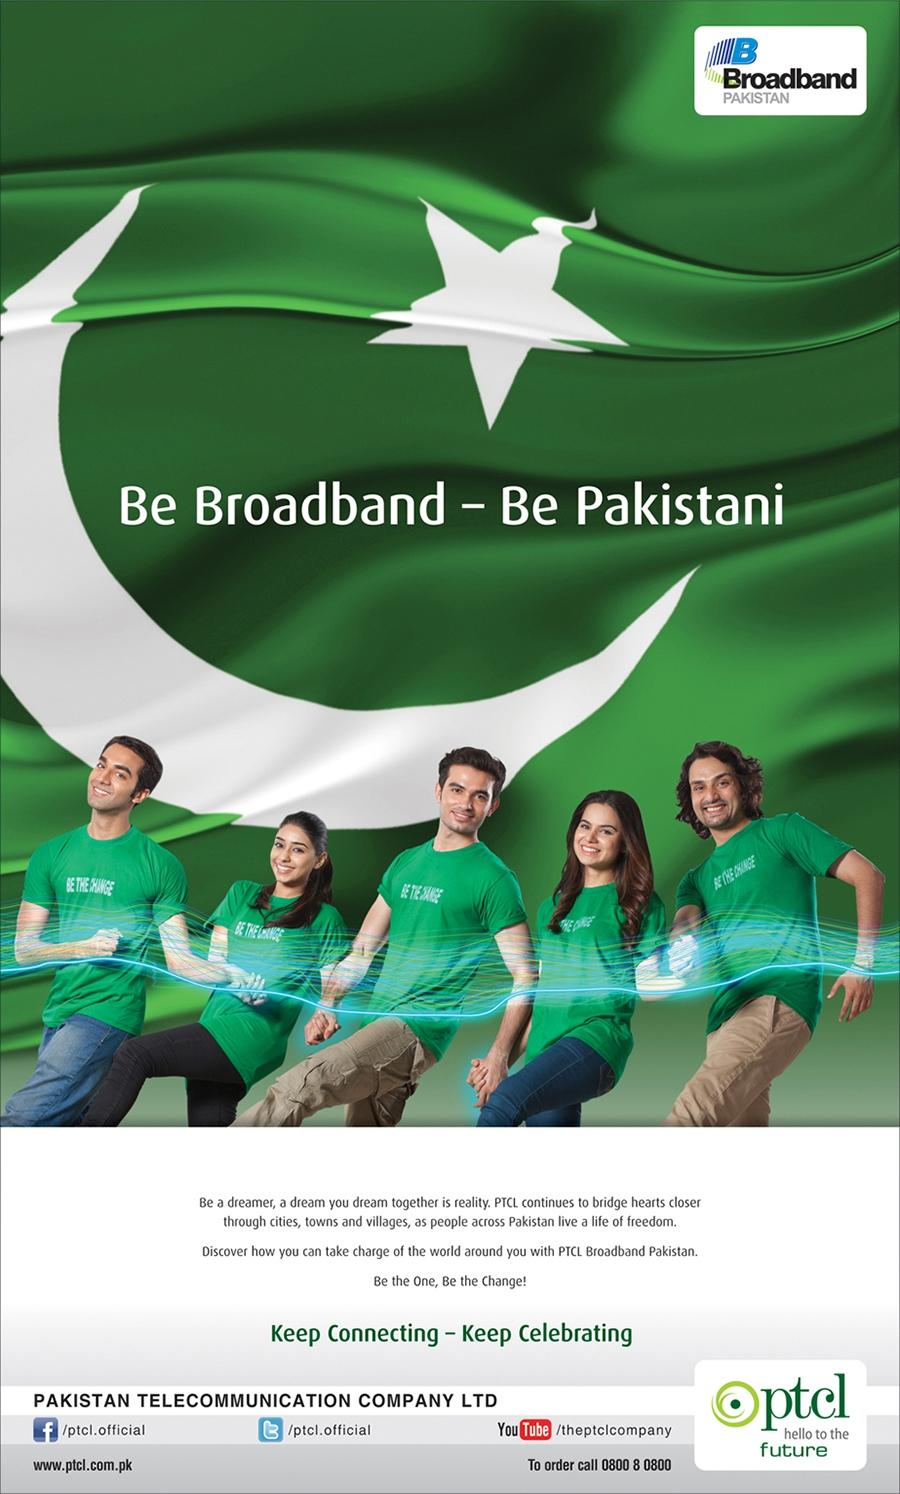 Be Broadband - Be Pakistani